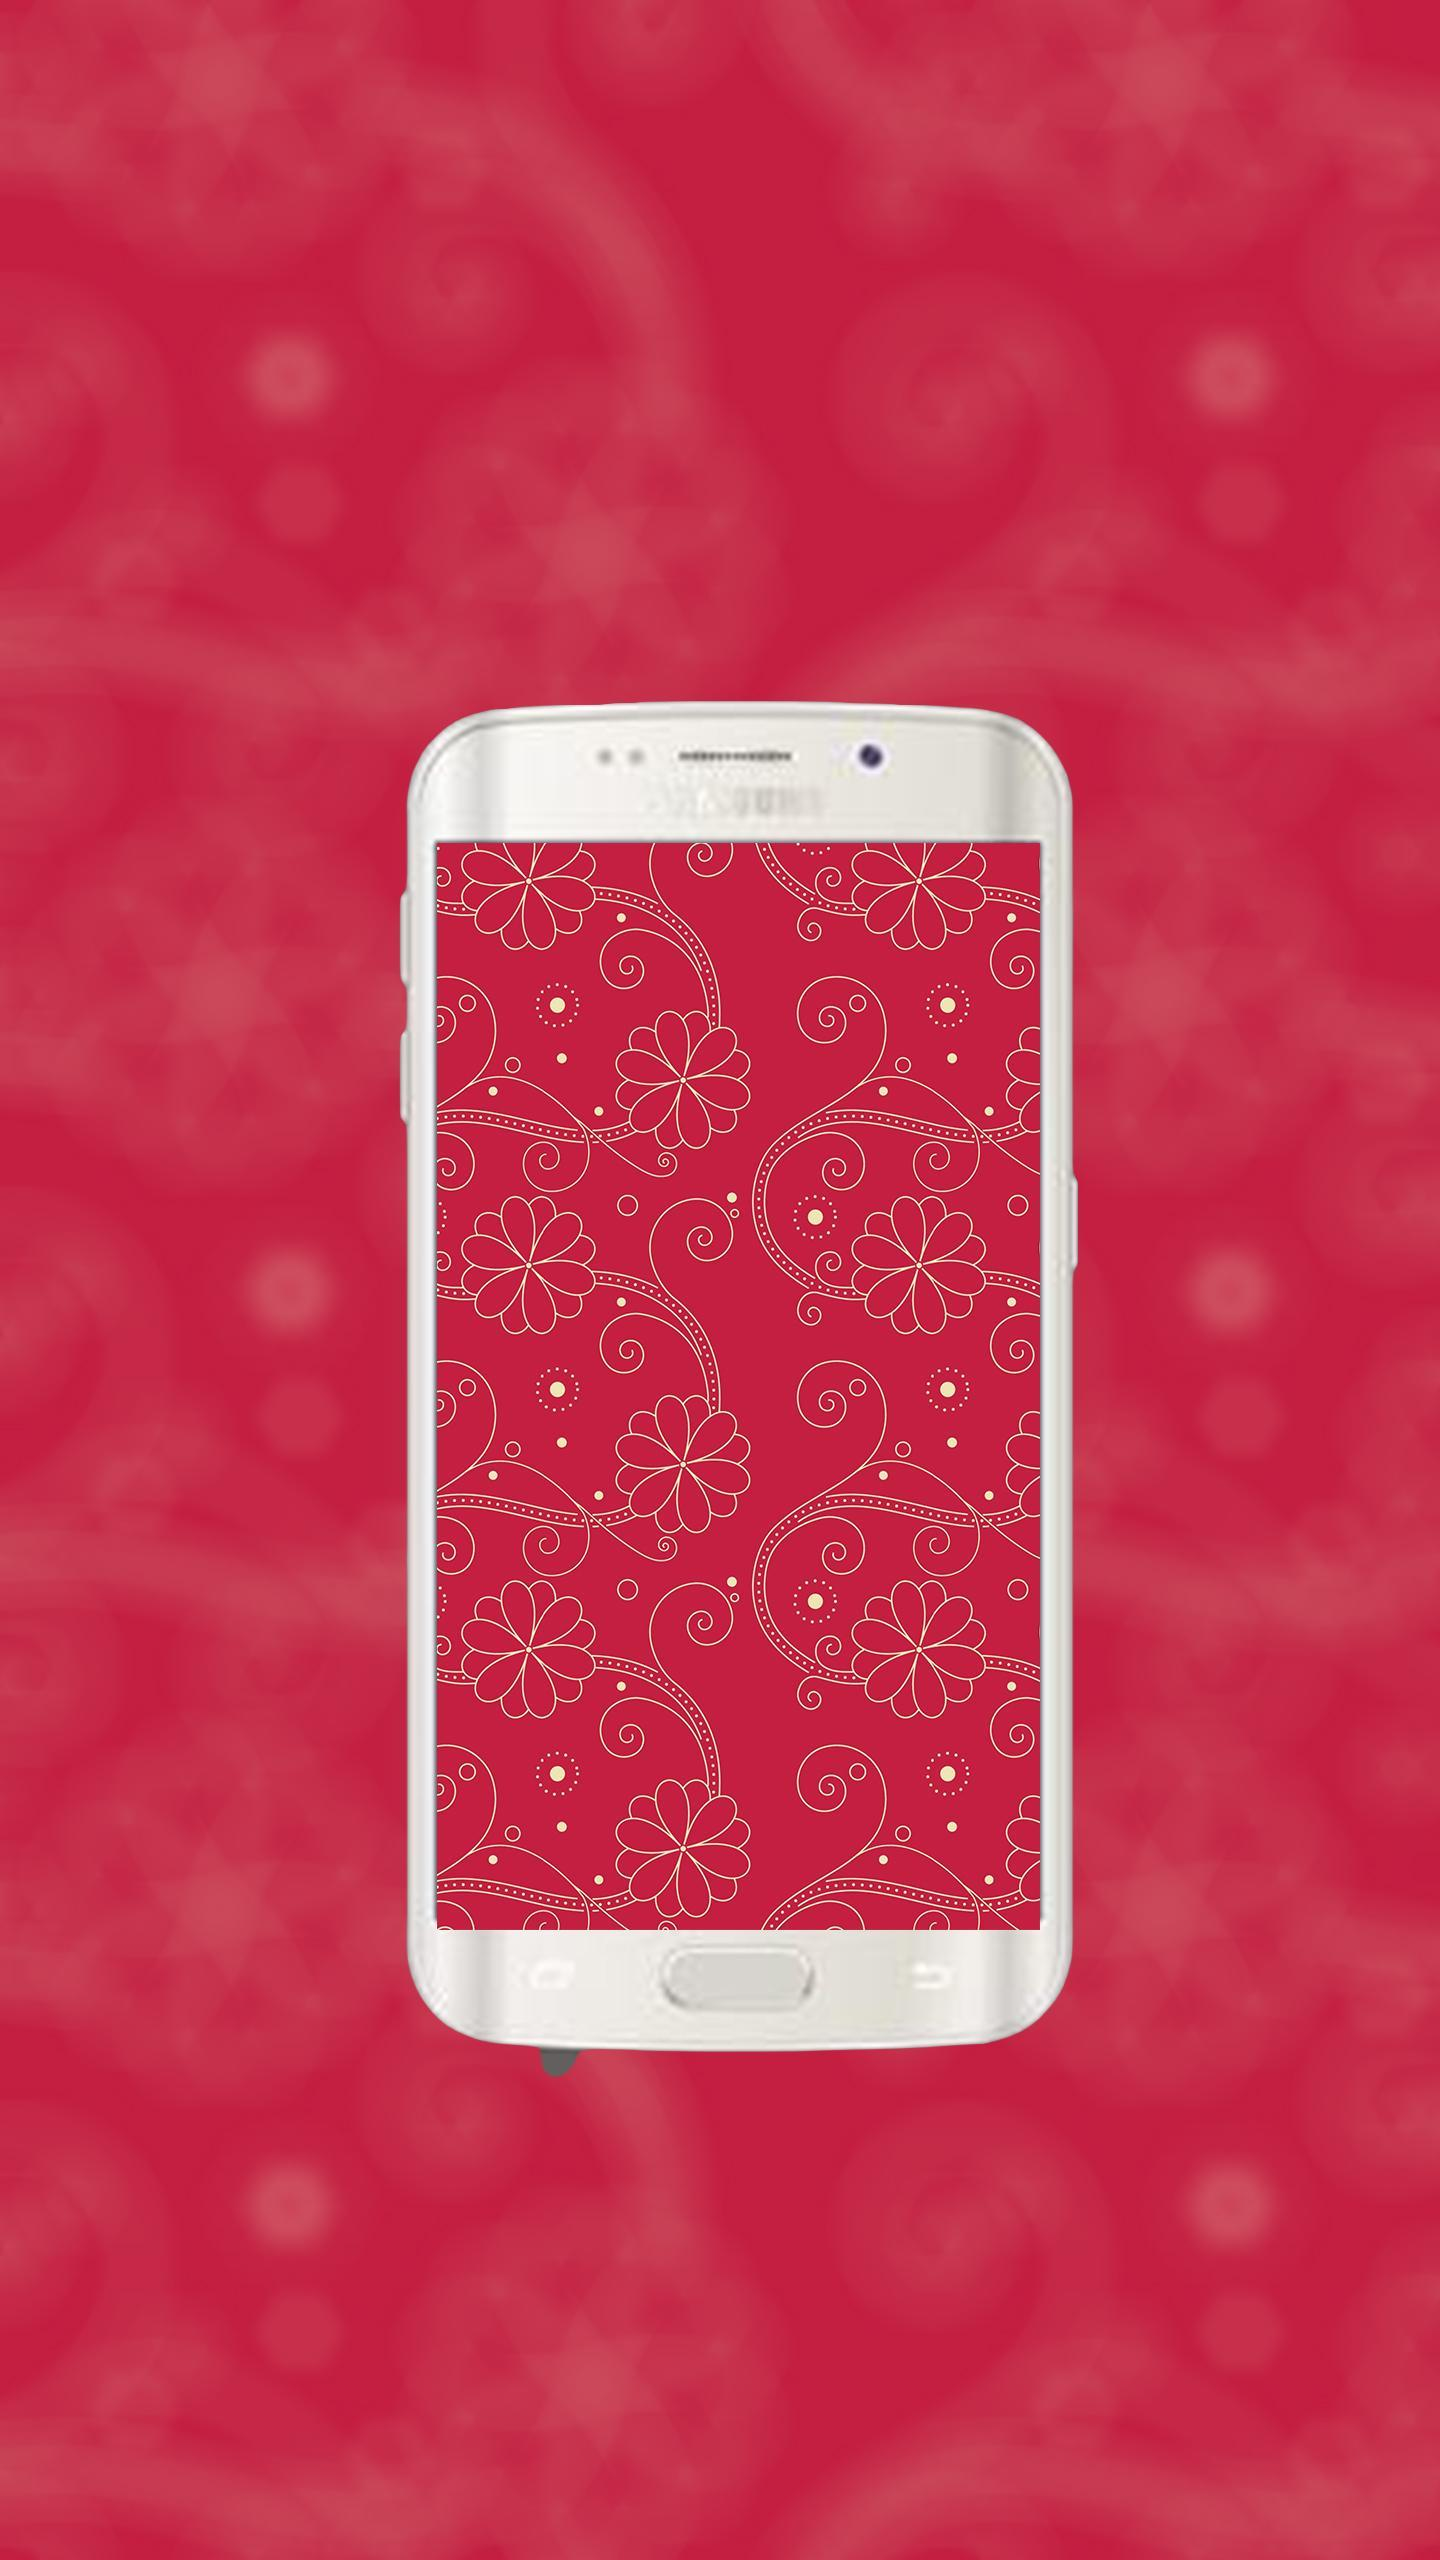 Wallpapers HD 2020 for Android   APK Download 1440x2560